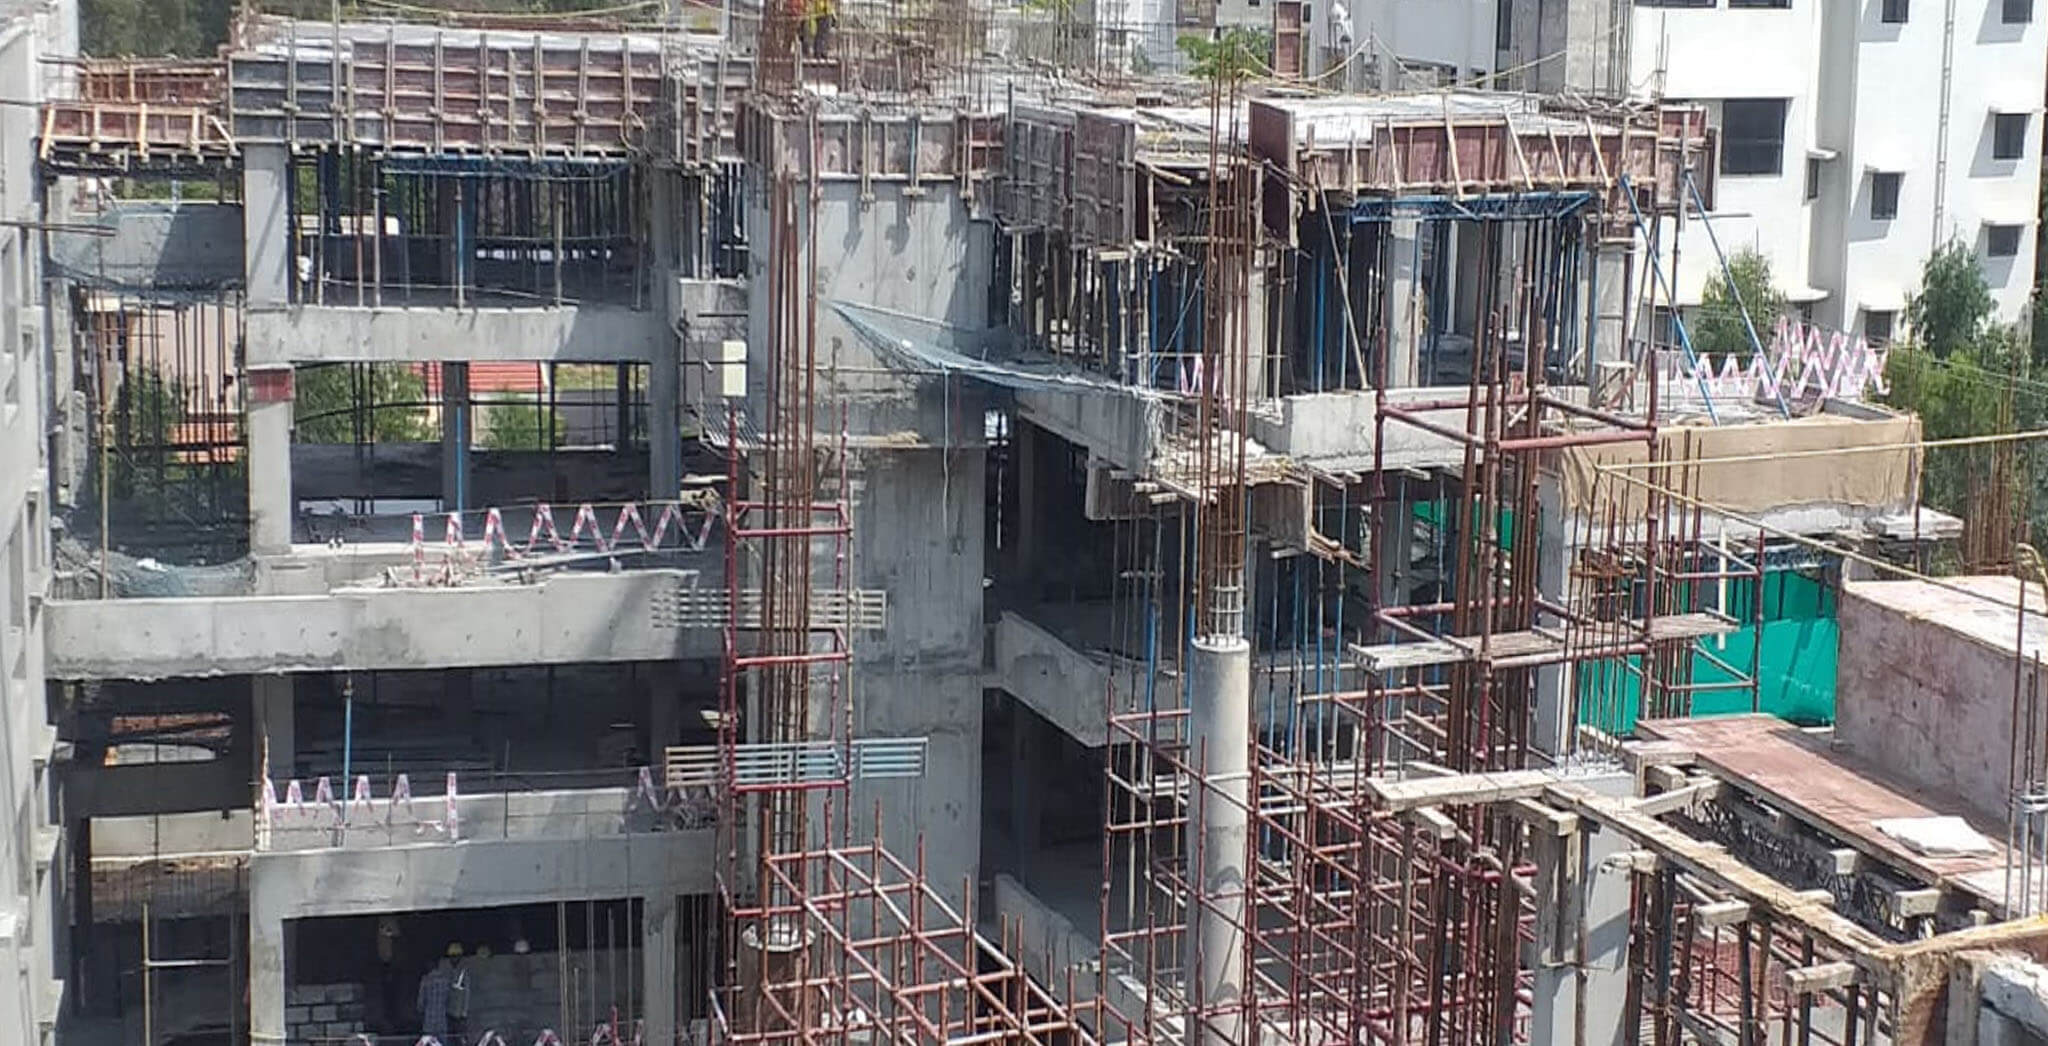 Feb 2021 - On Casting of Block B Terrace floor slab as on 27th February 2021